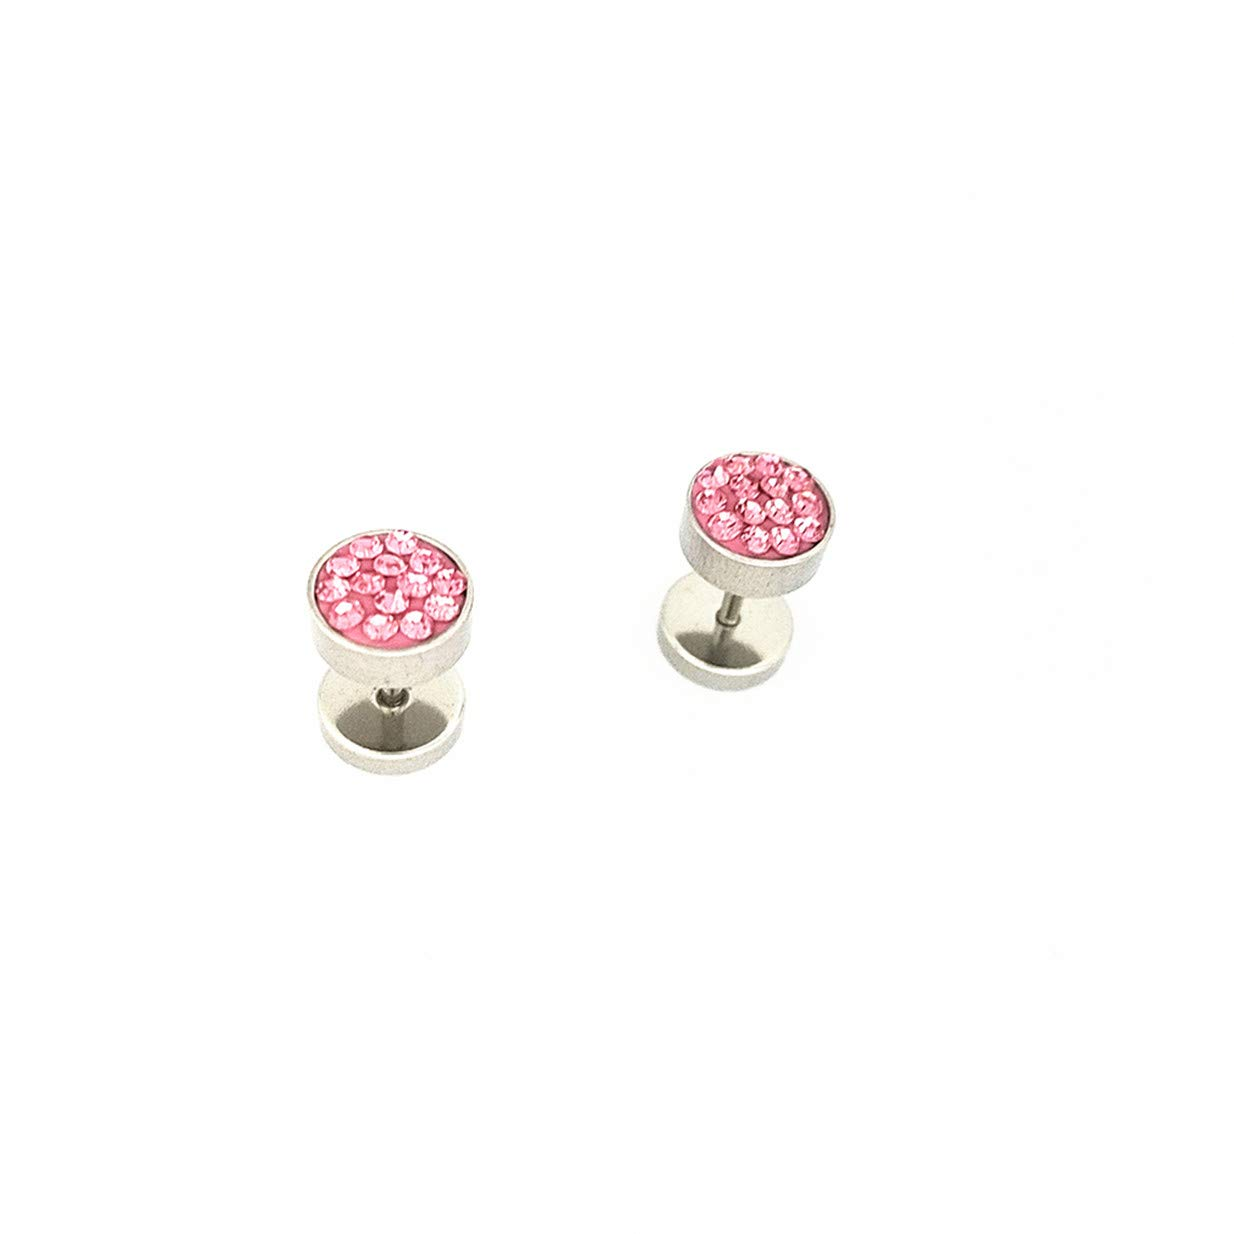 LALANG Simple Unisex Round Stainless Steel Crystal Punk Ear Studs Earrings(Pink Crystal)